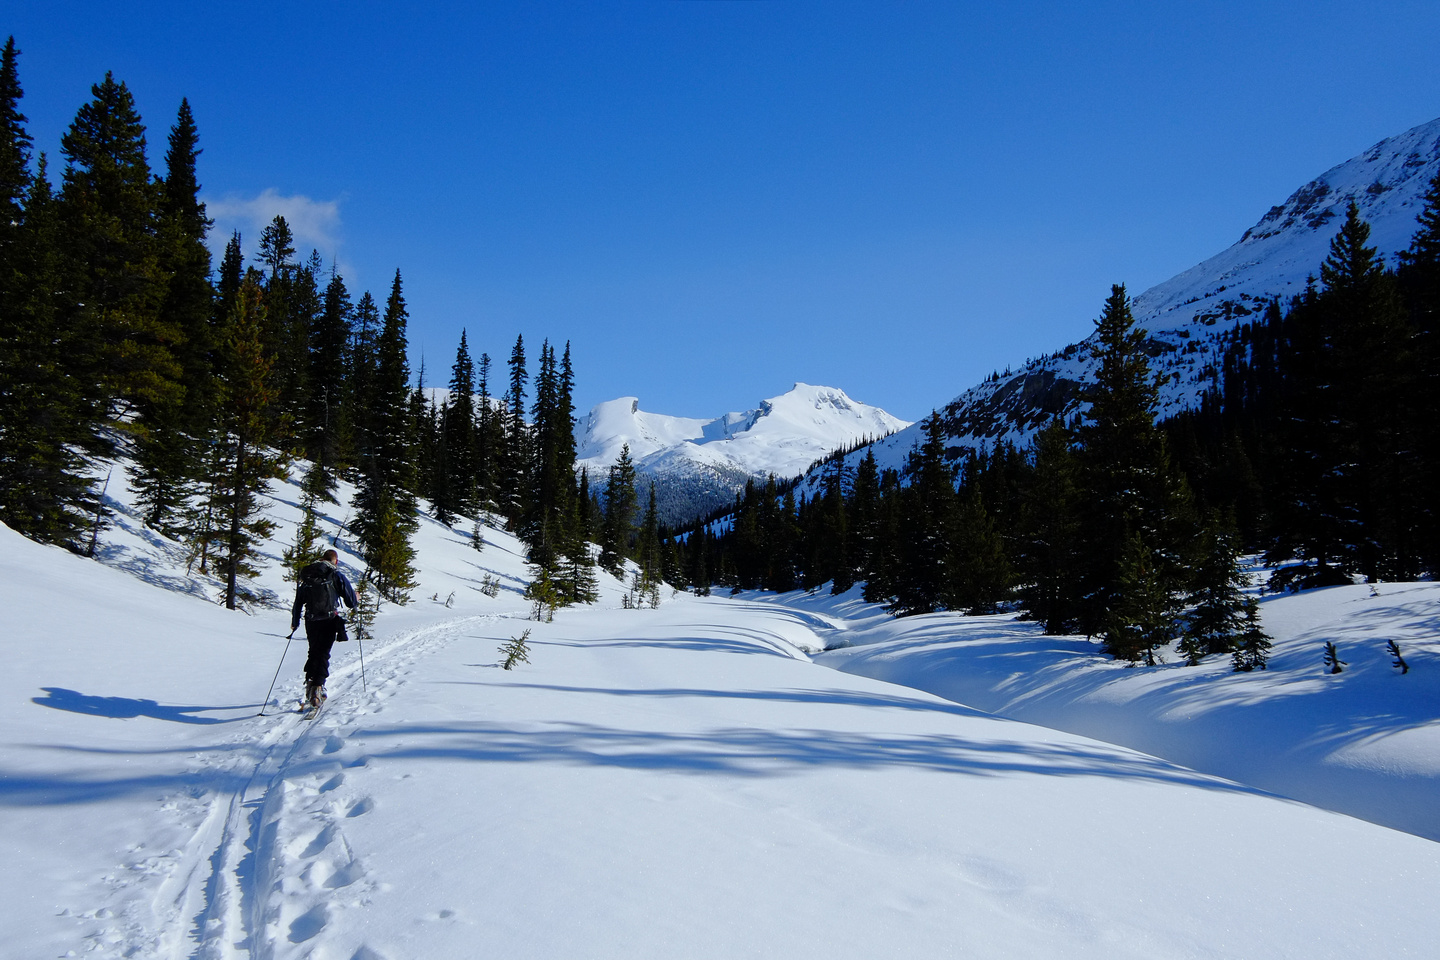 Skiing up Mosquito Creek.